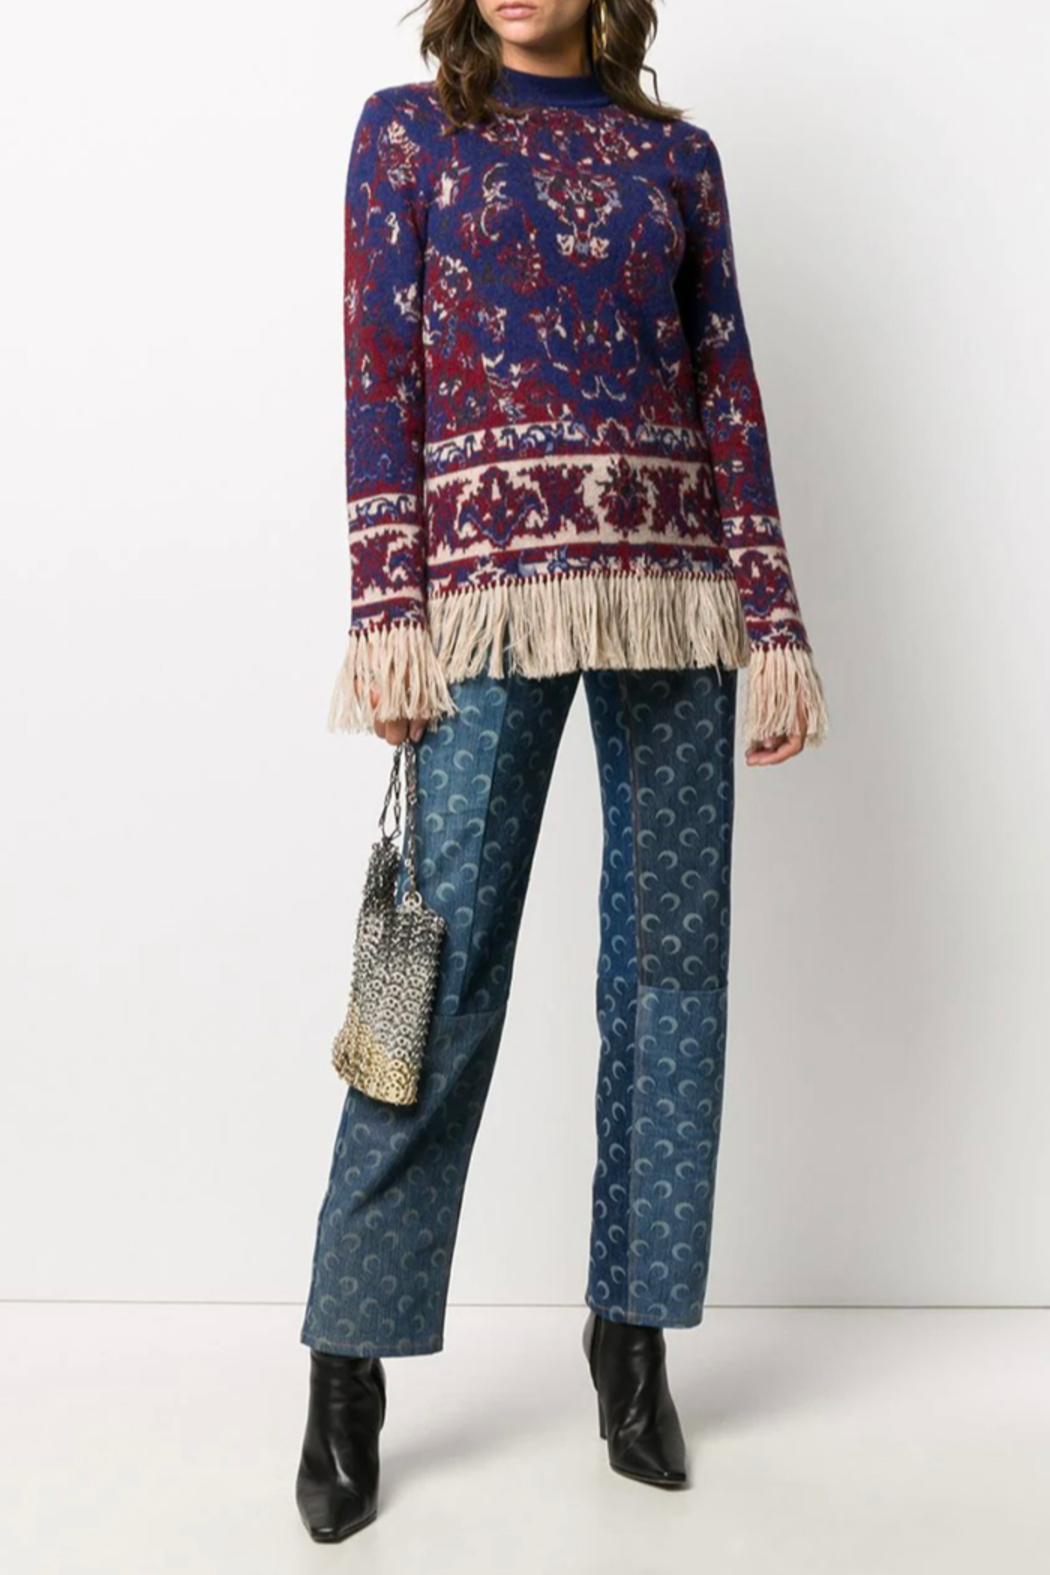 Paco Rabanne KNIT PULLOVER WITH FRINGE - Side Cropped Image